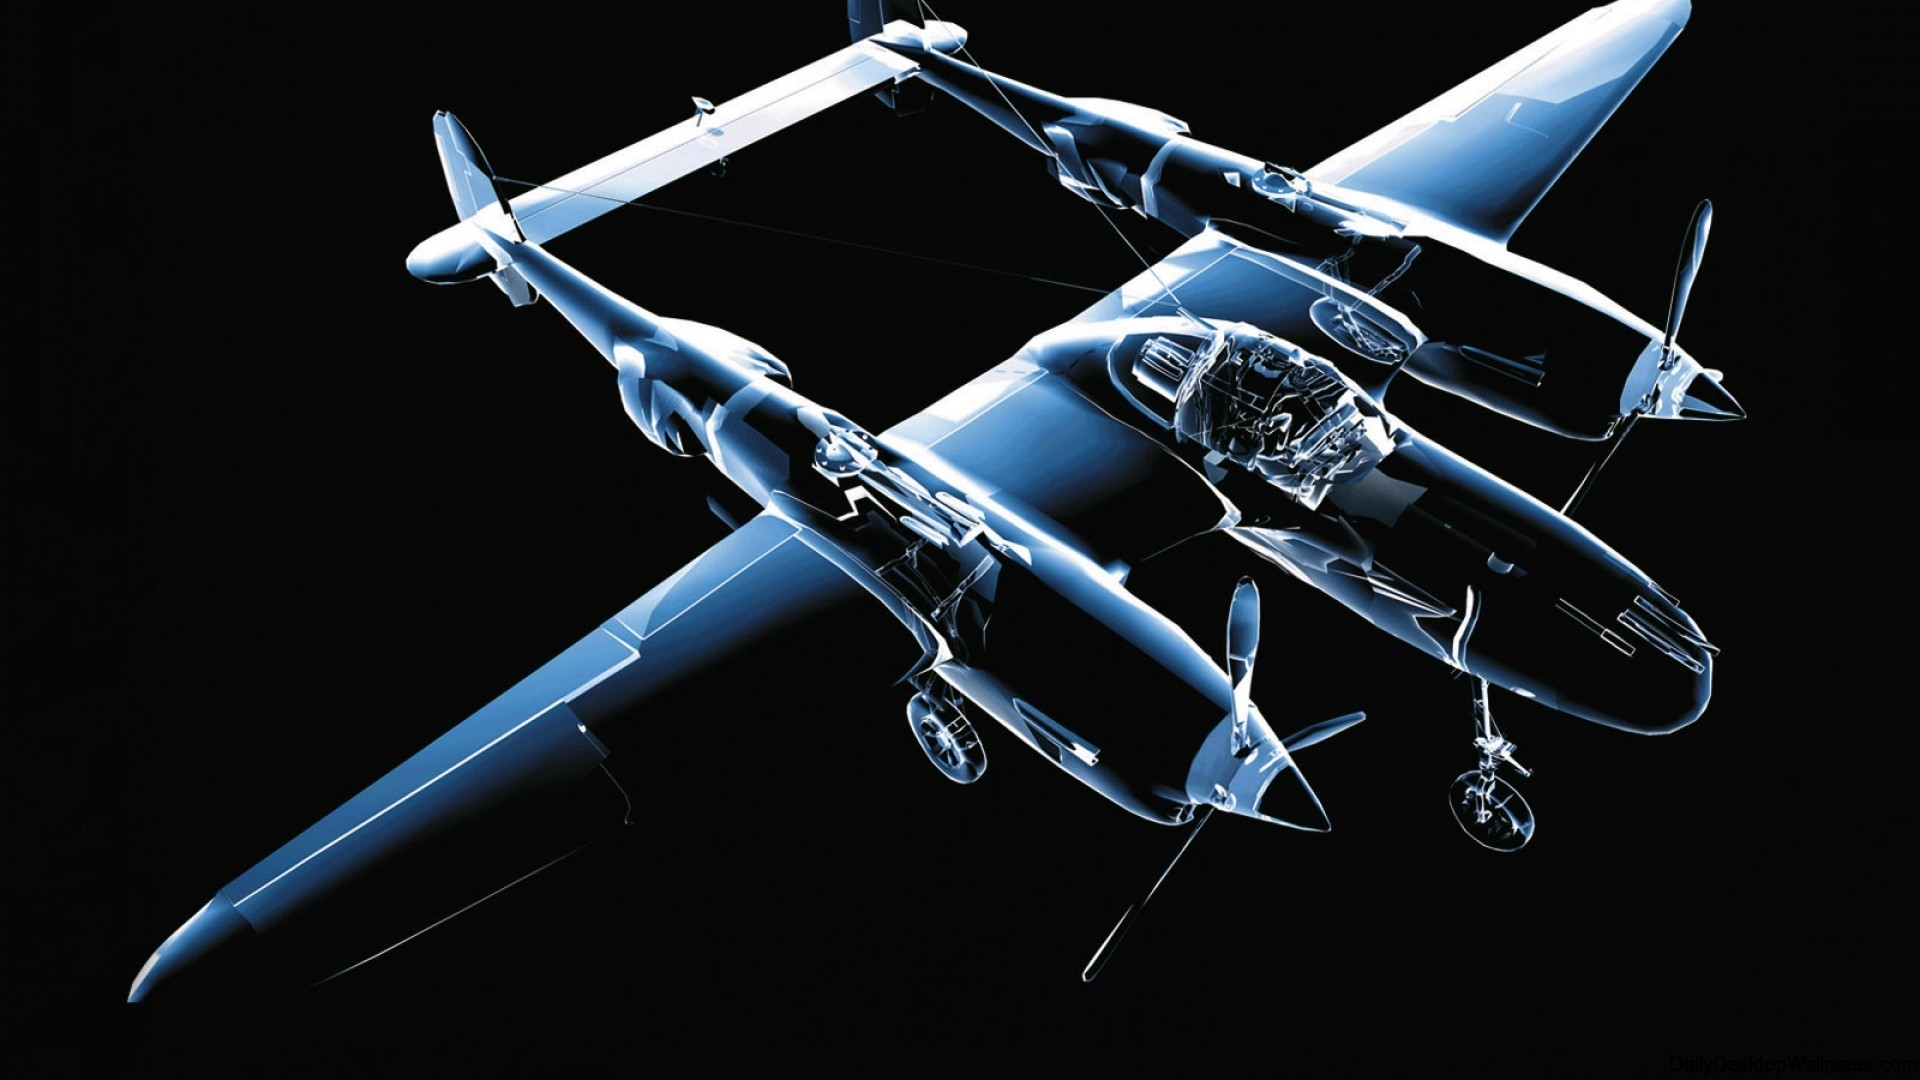 3D Aircraft wallpaper